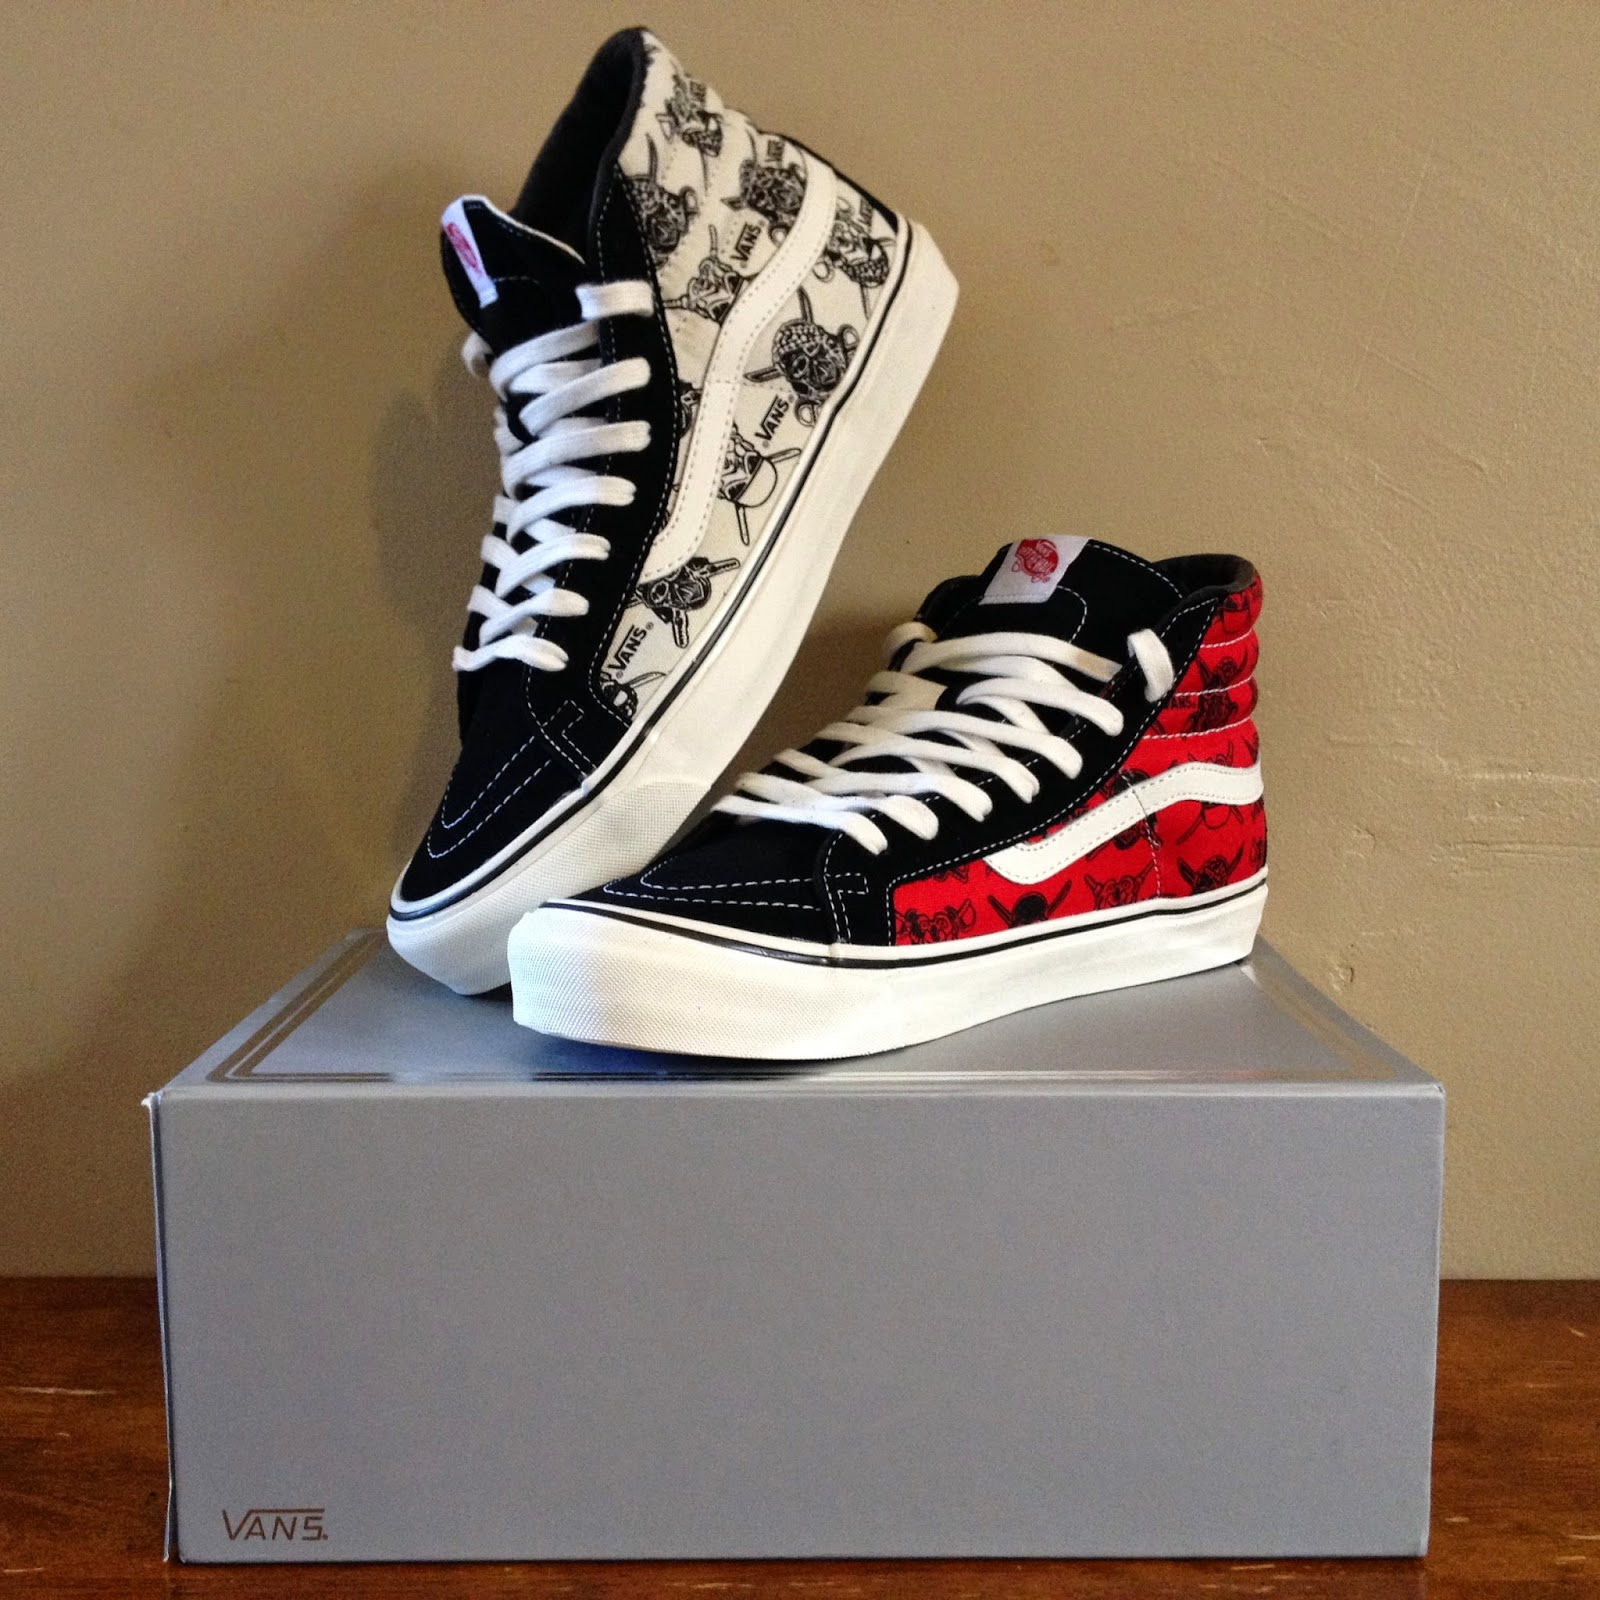 9580a369ed Laced   Fitted Syndicate  Star Wars x Vans Vault Collection OG Sk8 ...